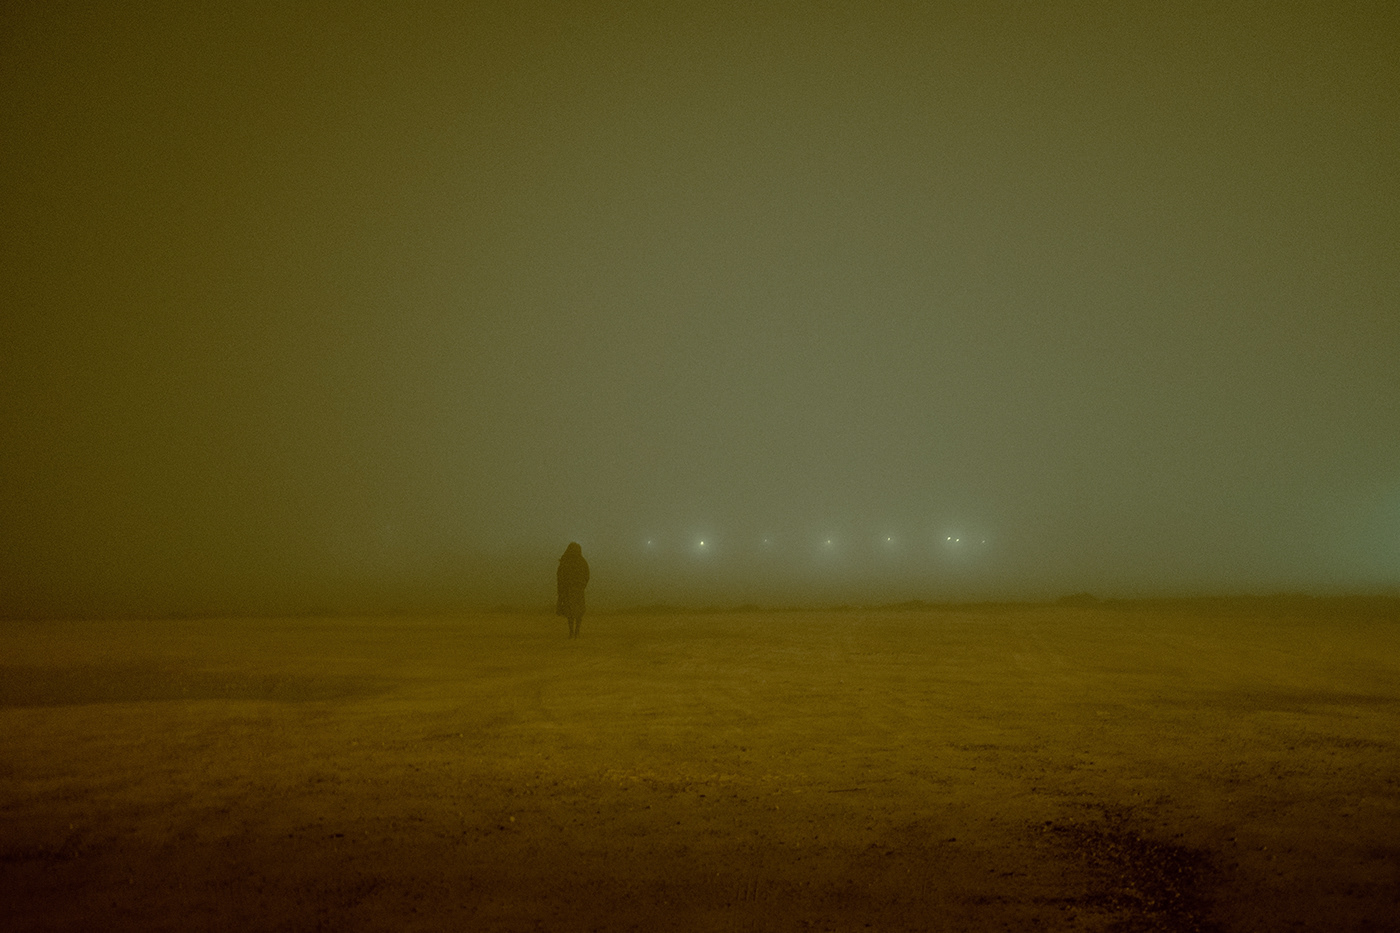 fog weather photohraphy x100f people Ambient night cinematography lights